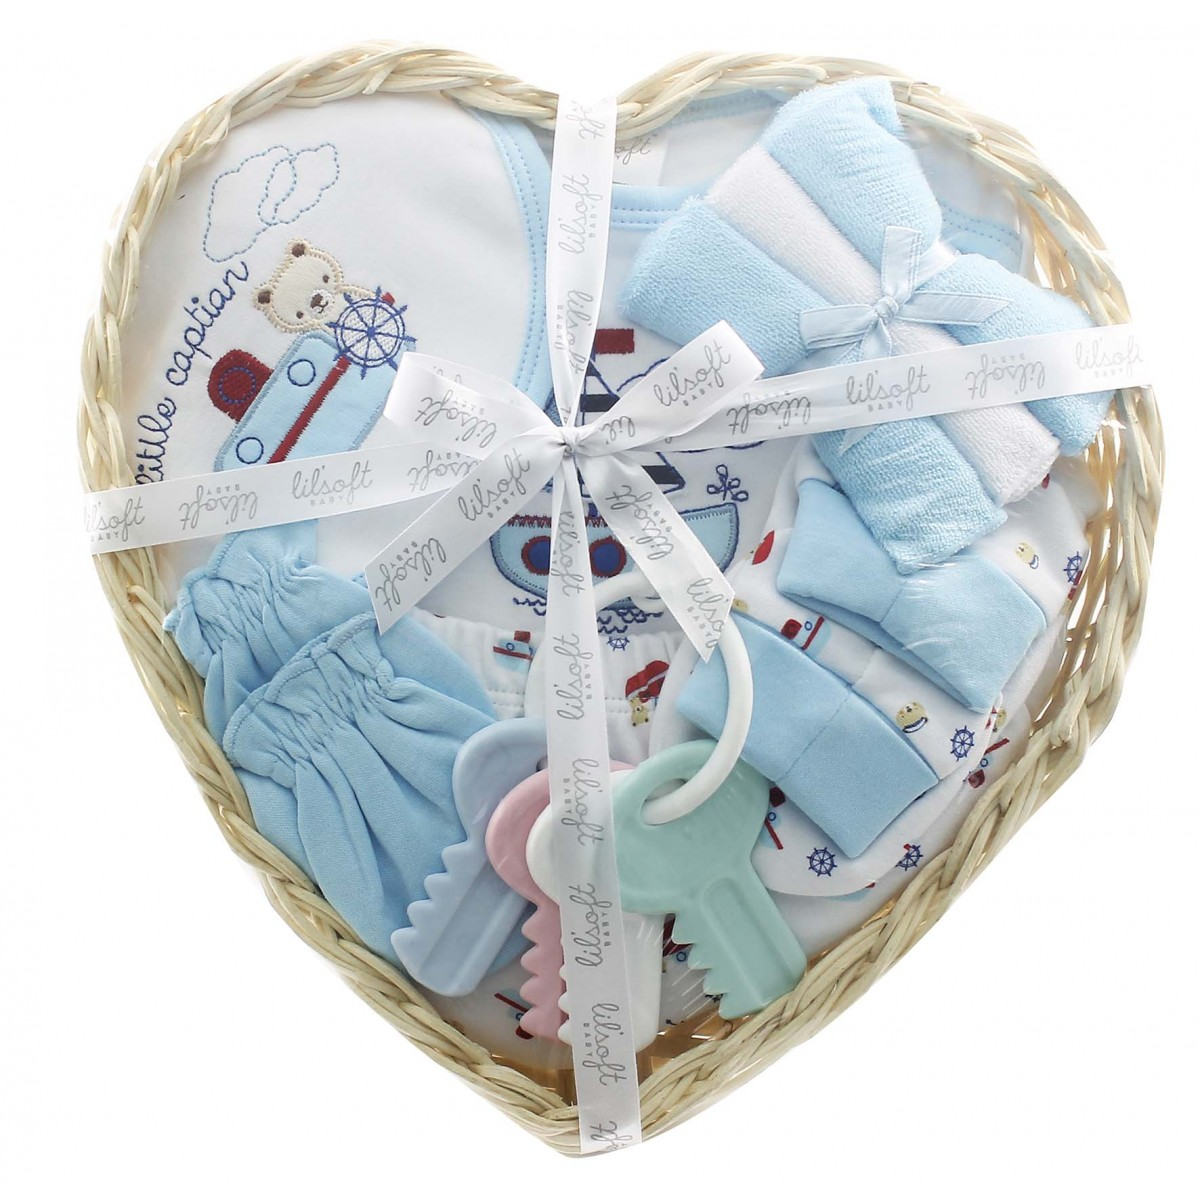 Baby Gift Set Packaging : Pcs baby gift set for lilsoft